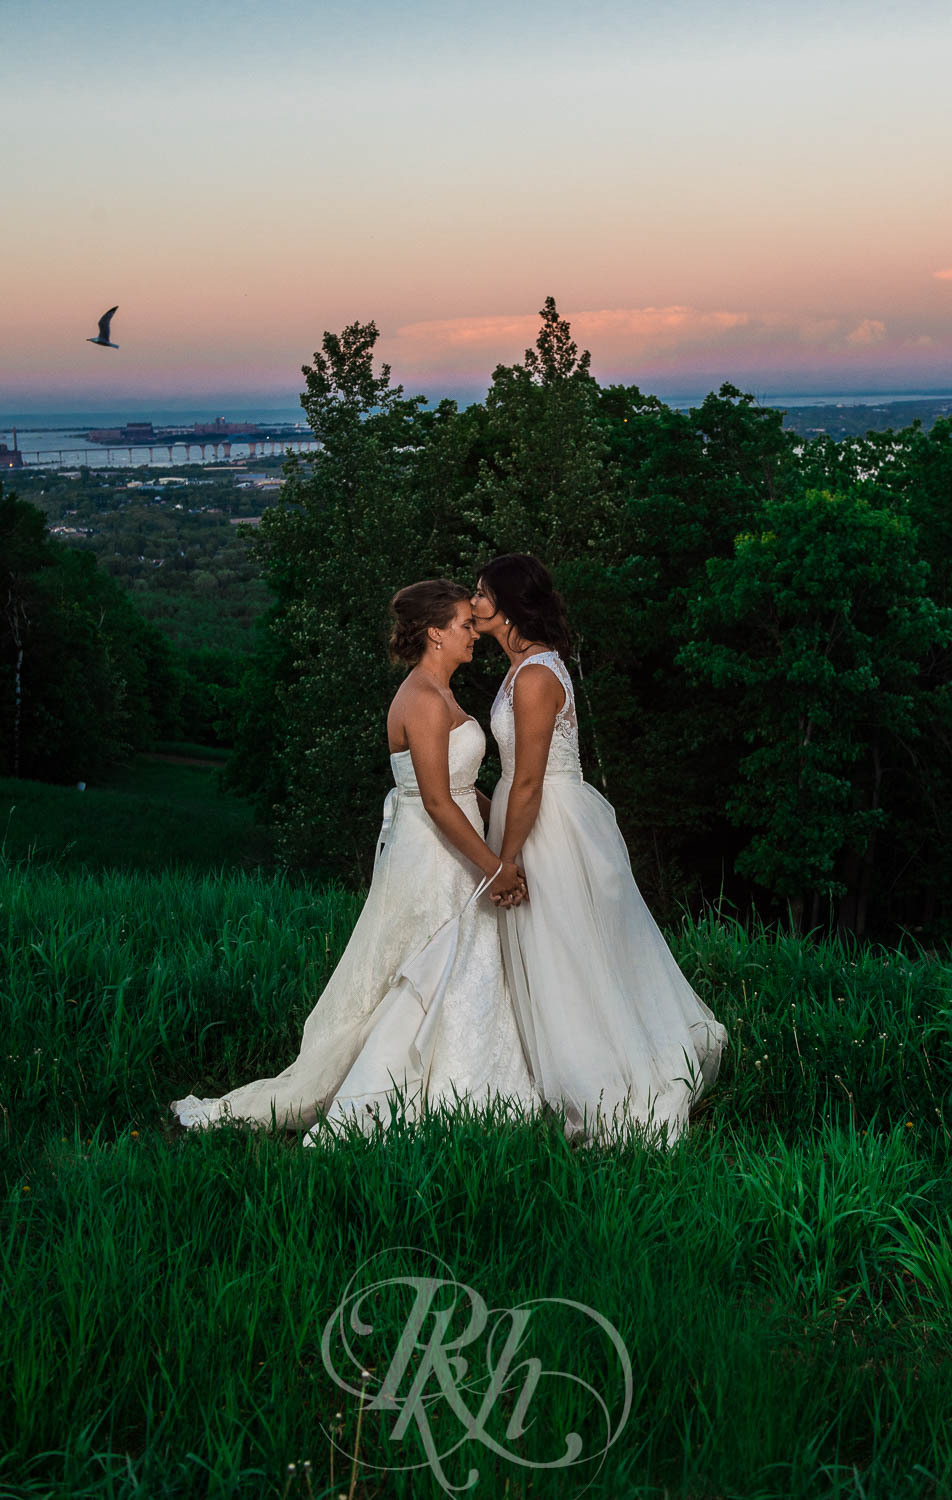 Britni & Paige - LGBT Minnesota Wedding Photography - Spirit Mountain - RKH Images  (31 of 32).jpg